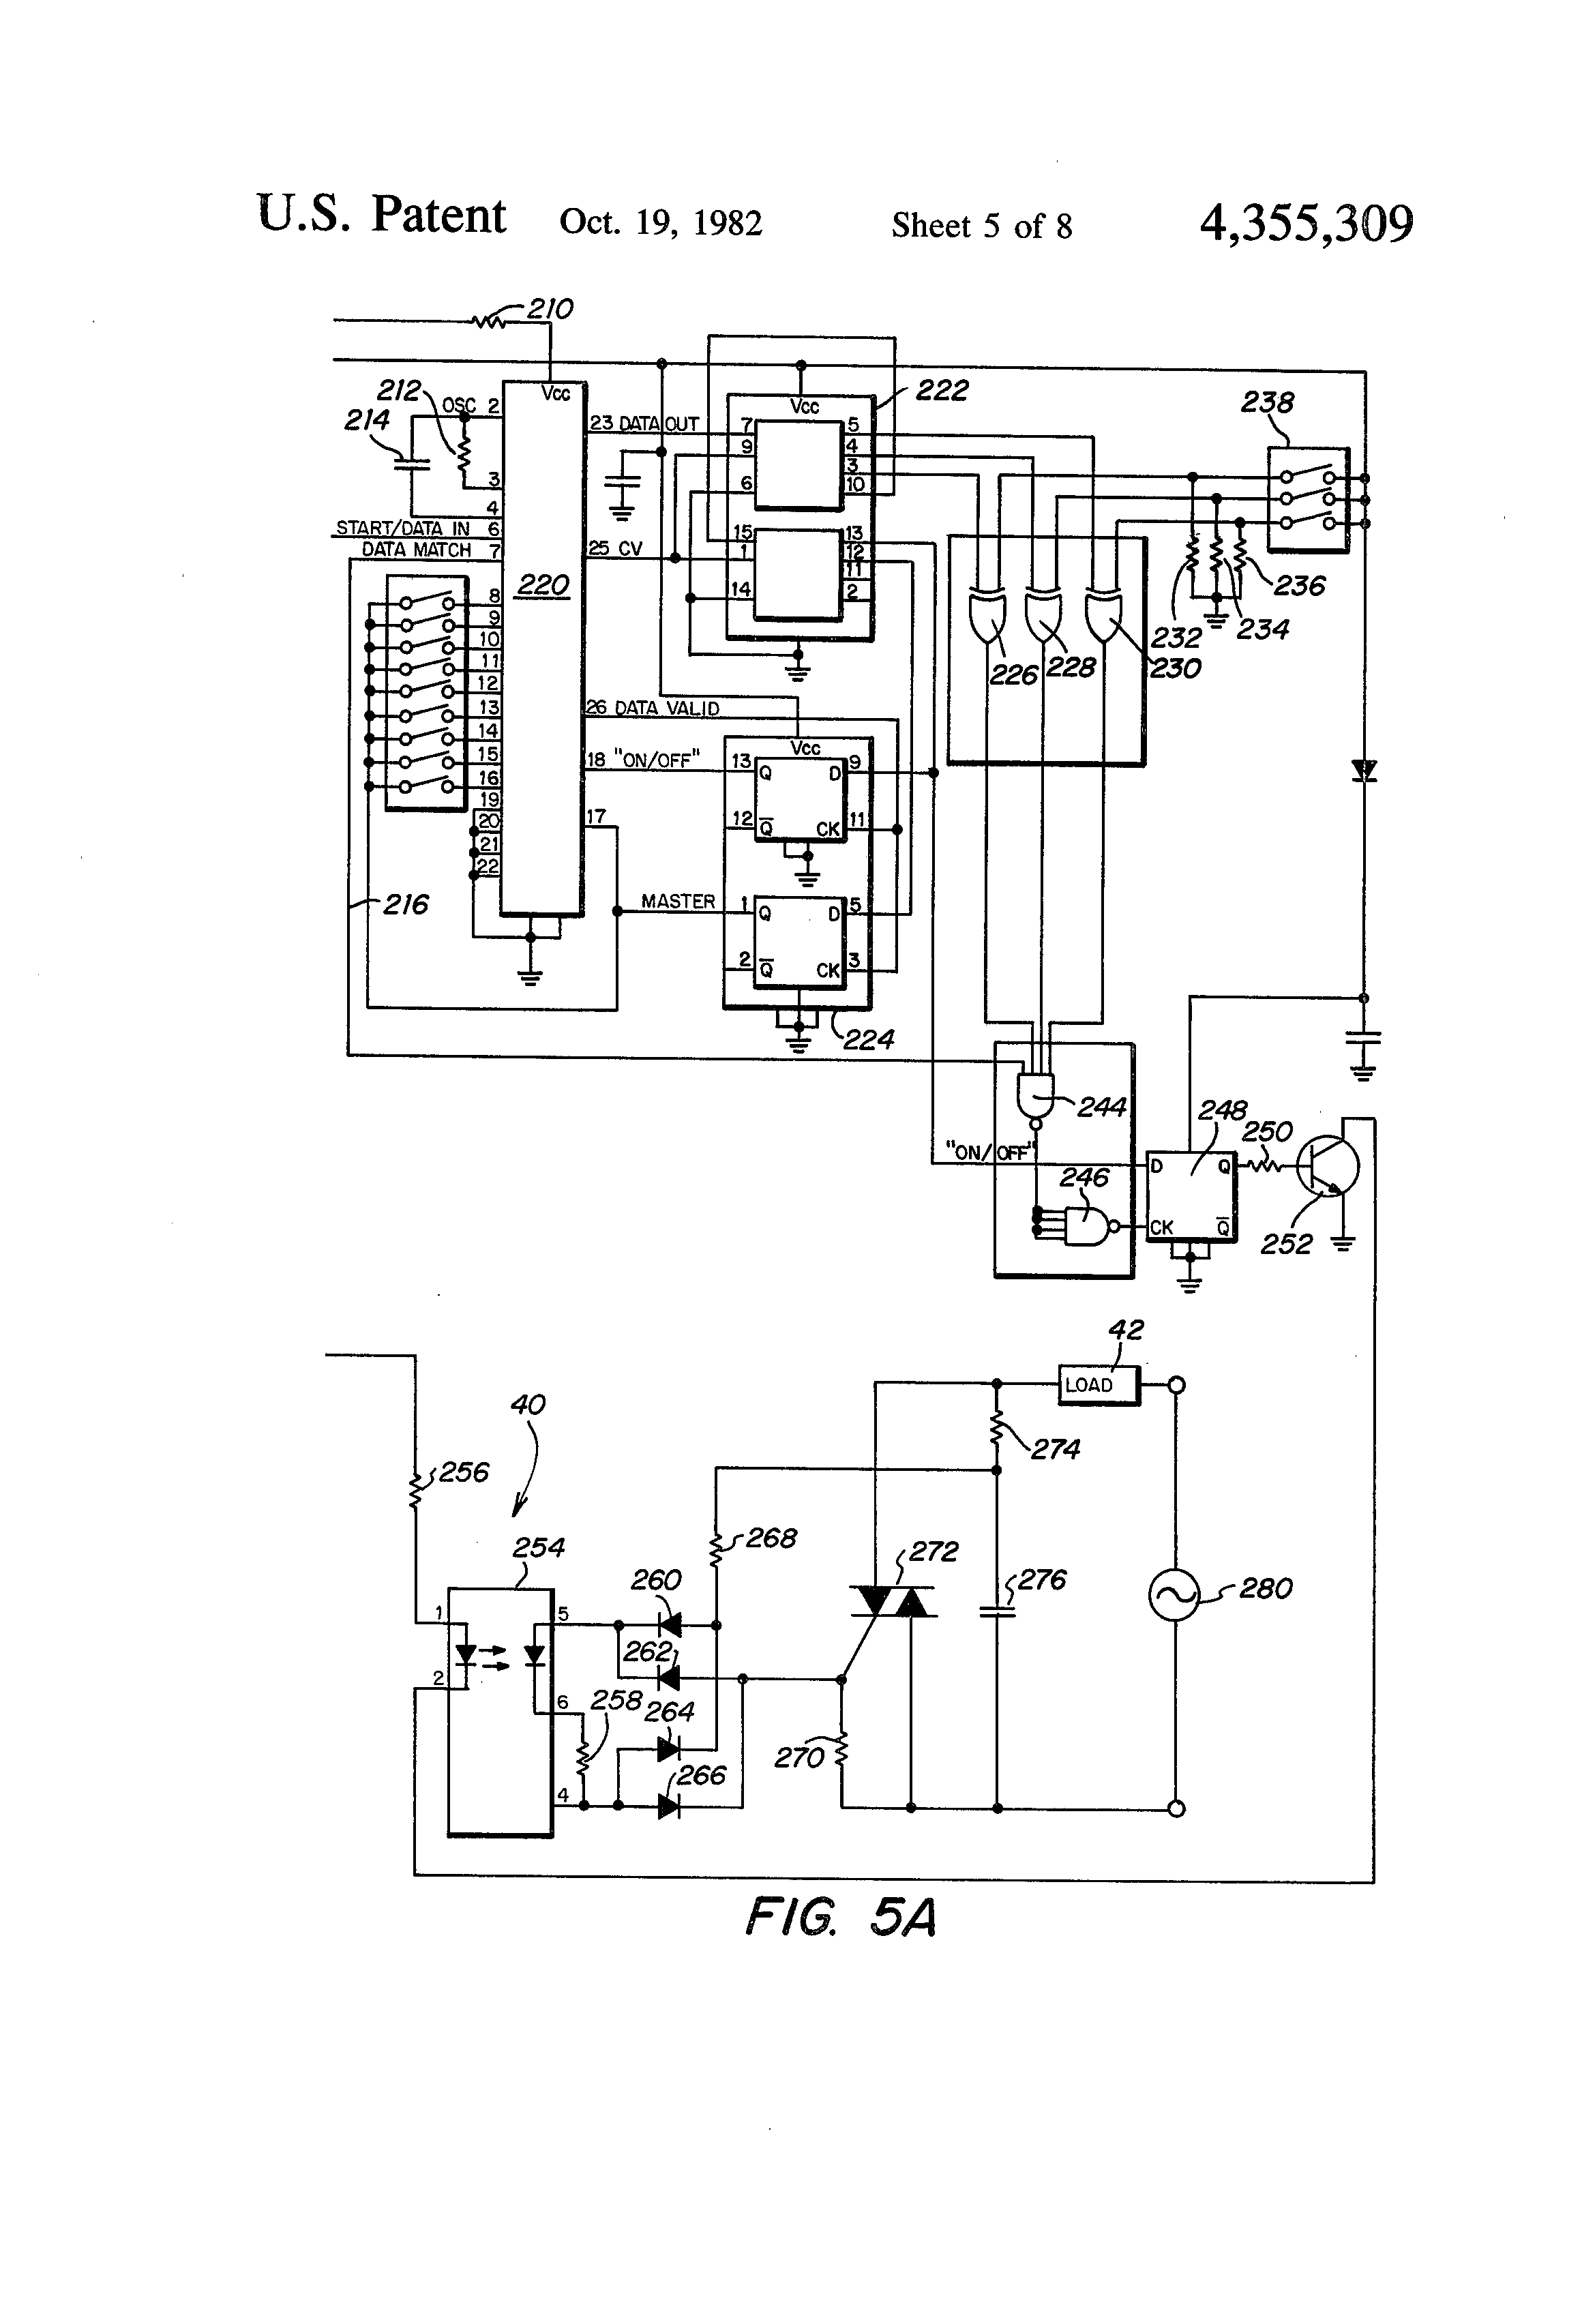 Genie Excelerator Wiring Diagram from wiringall.com